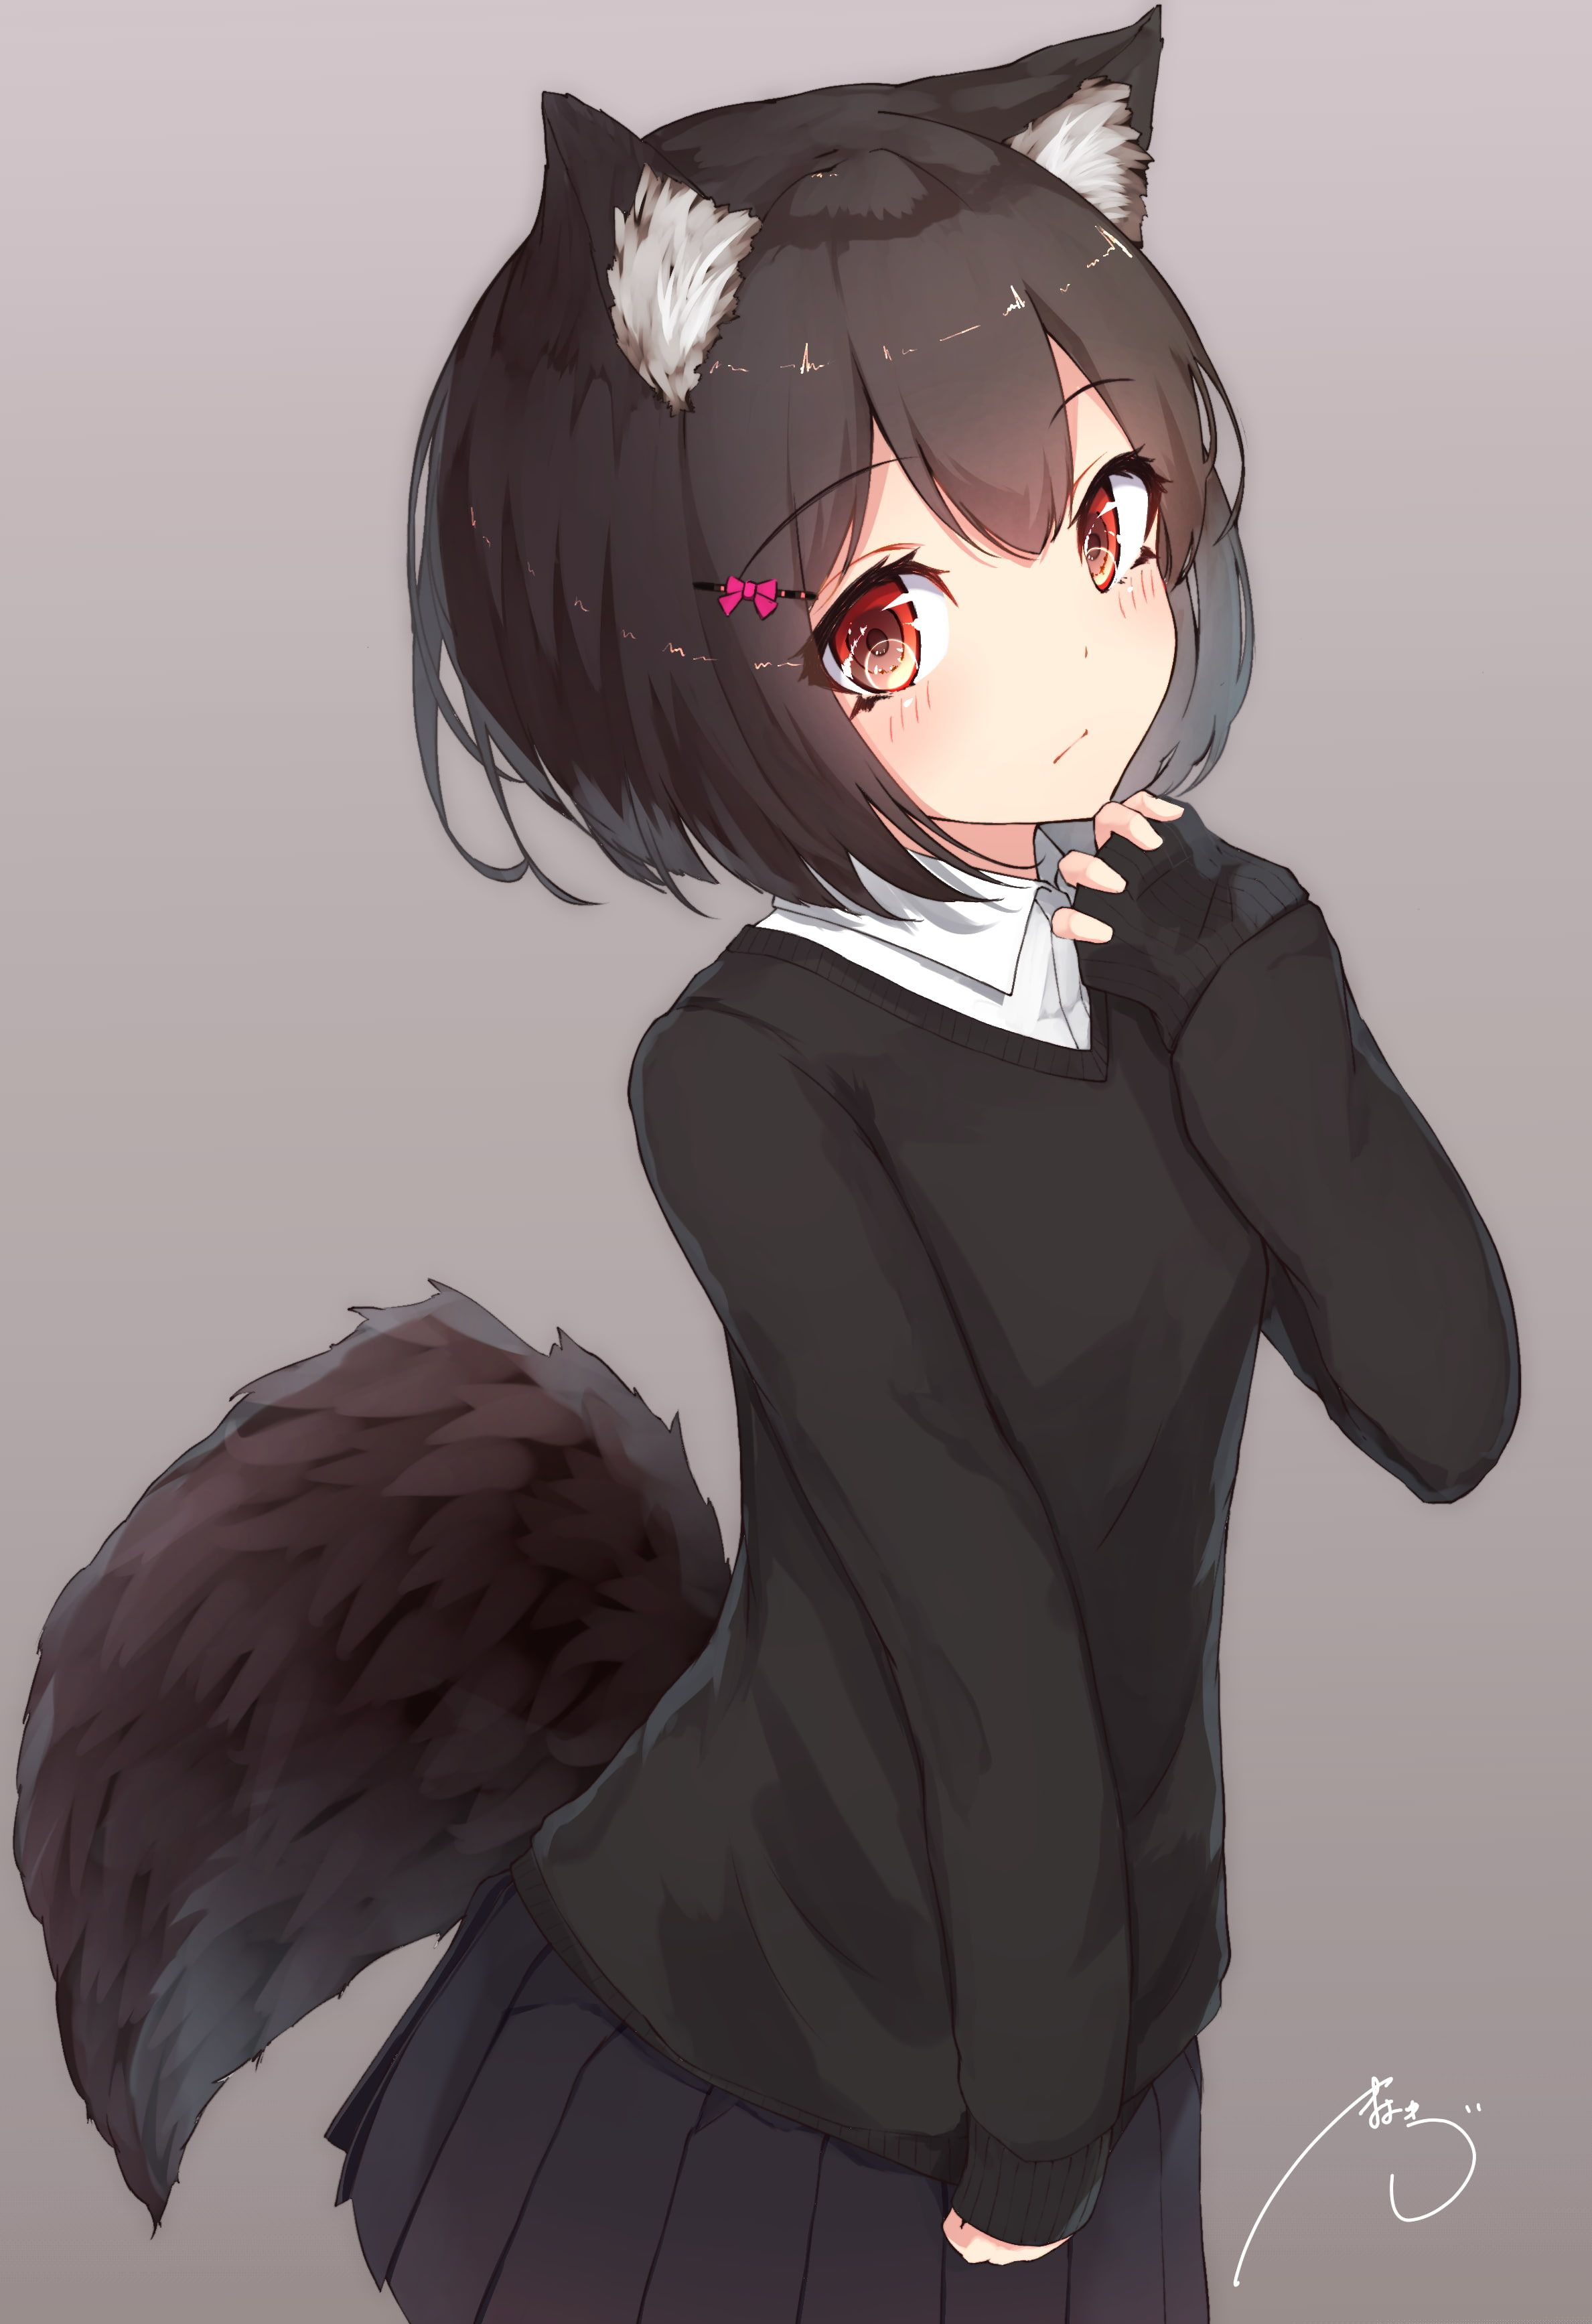 Anime Girl With Wolf Ears Wallpapers - Wallpaper Cave